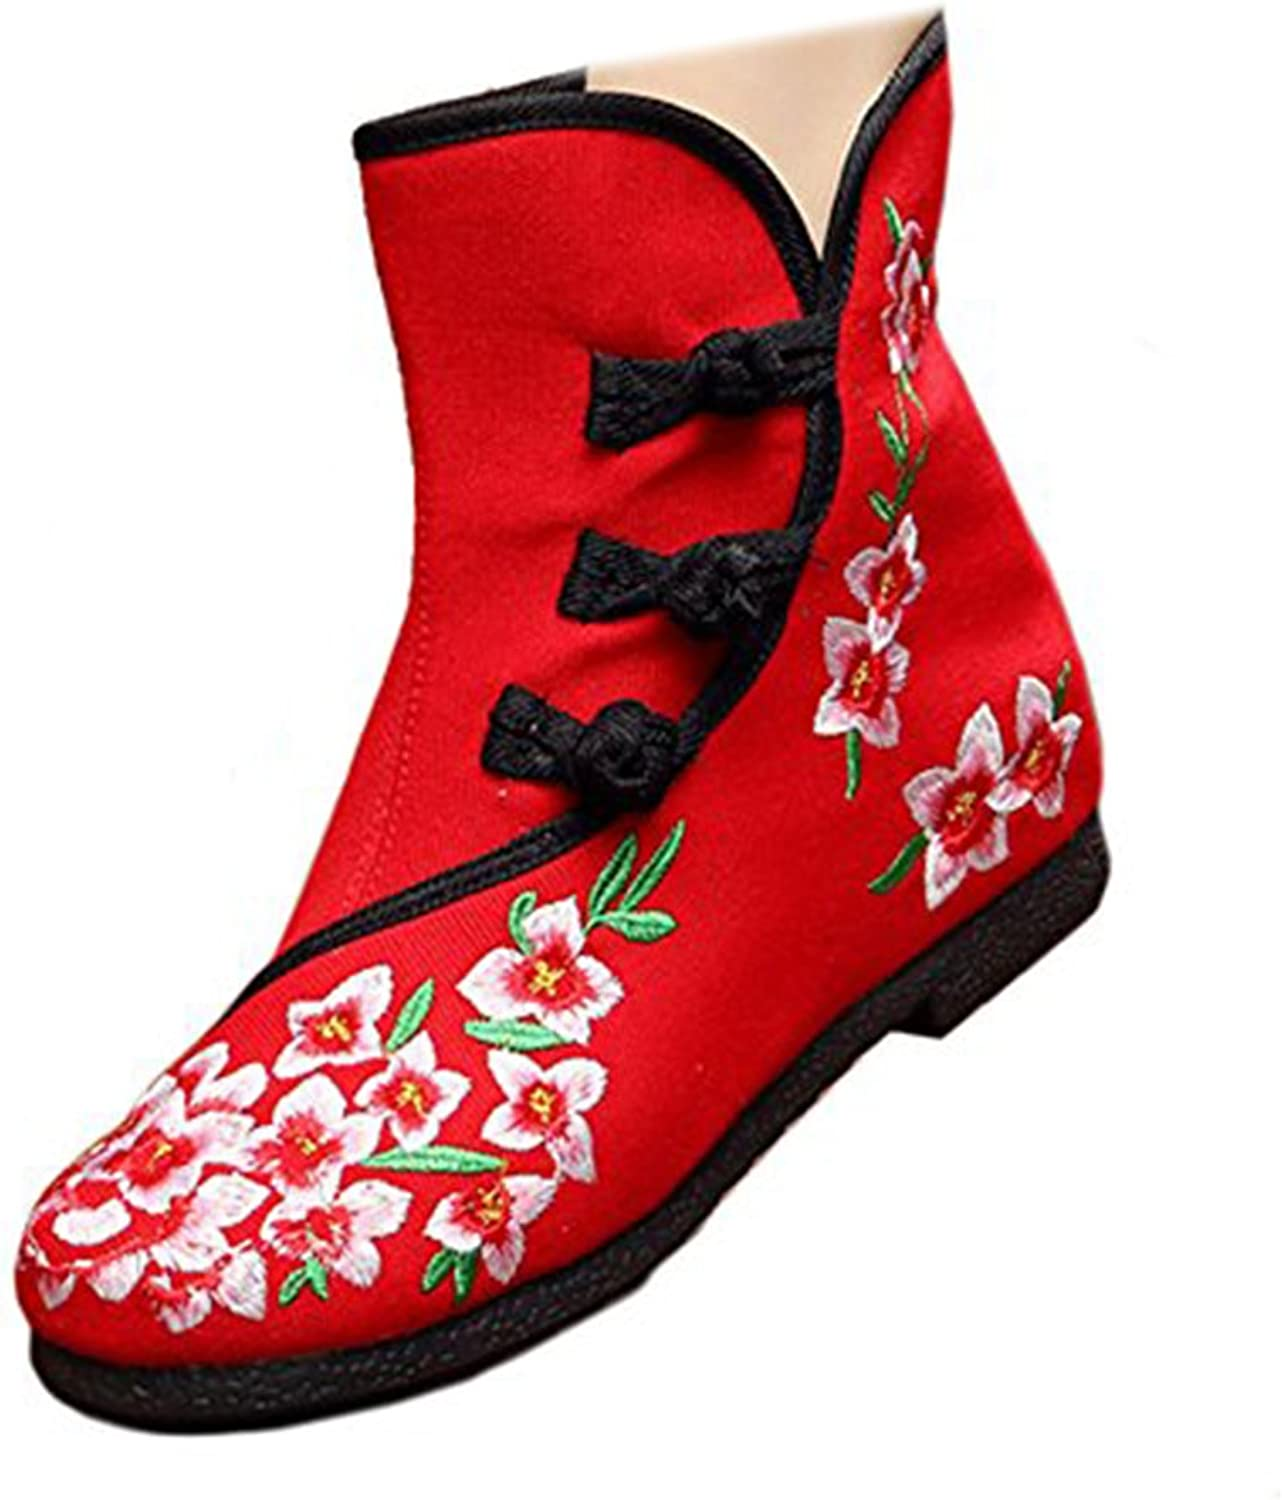 Shenghuajie Vintage Beijing Cloth shoes Embroidered Boots 12-02 red